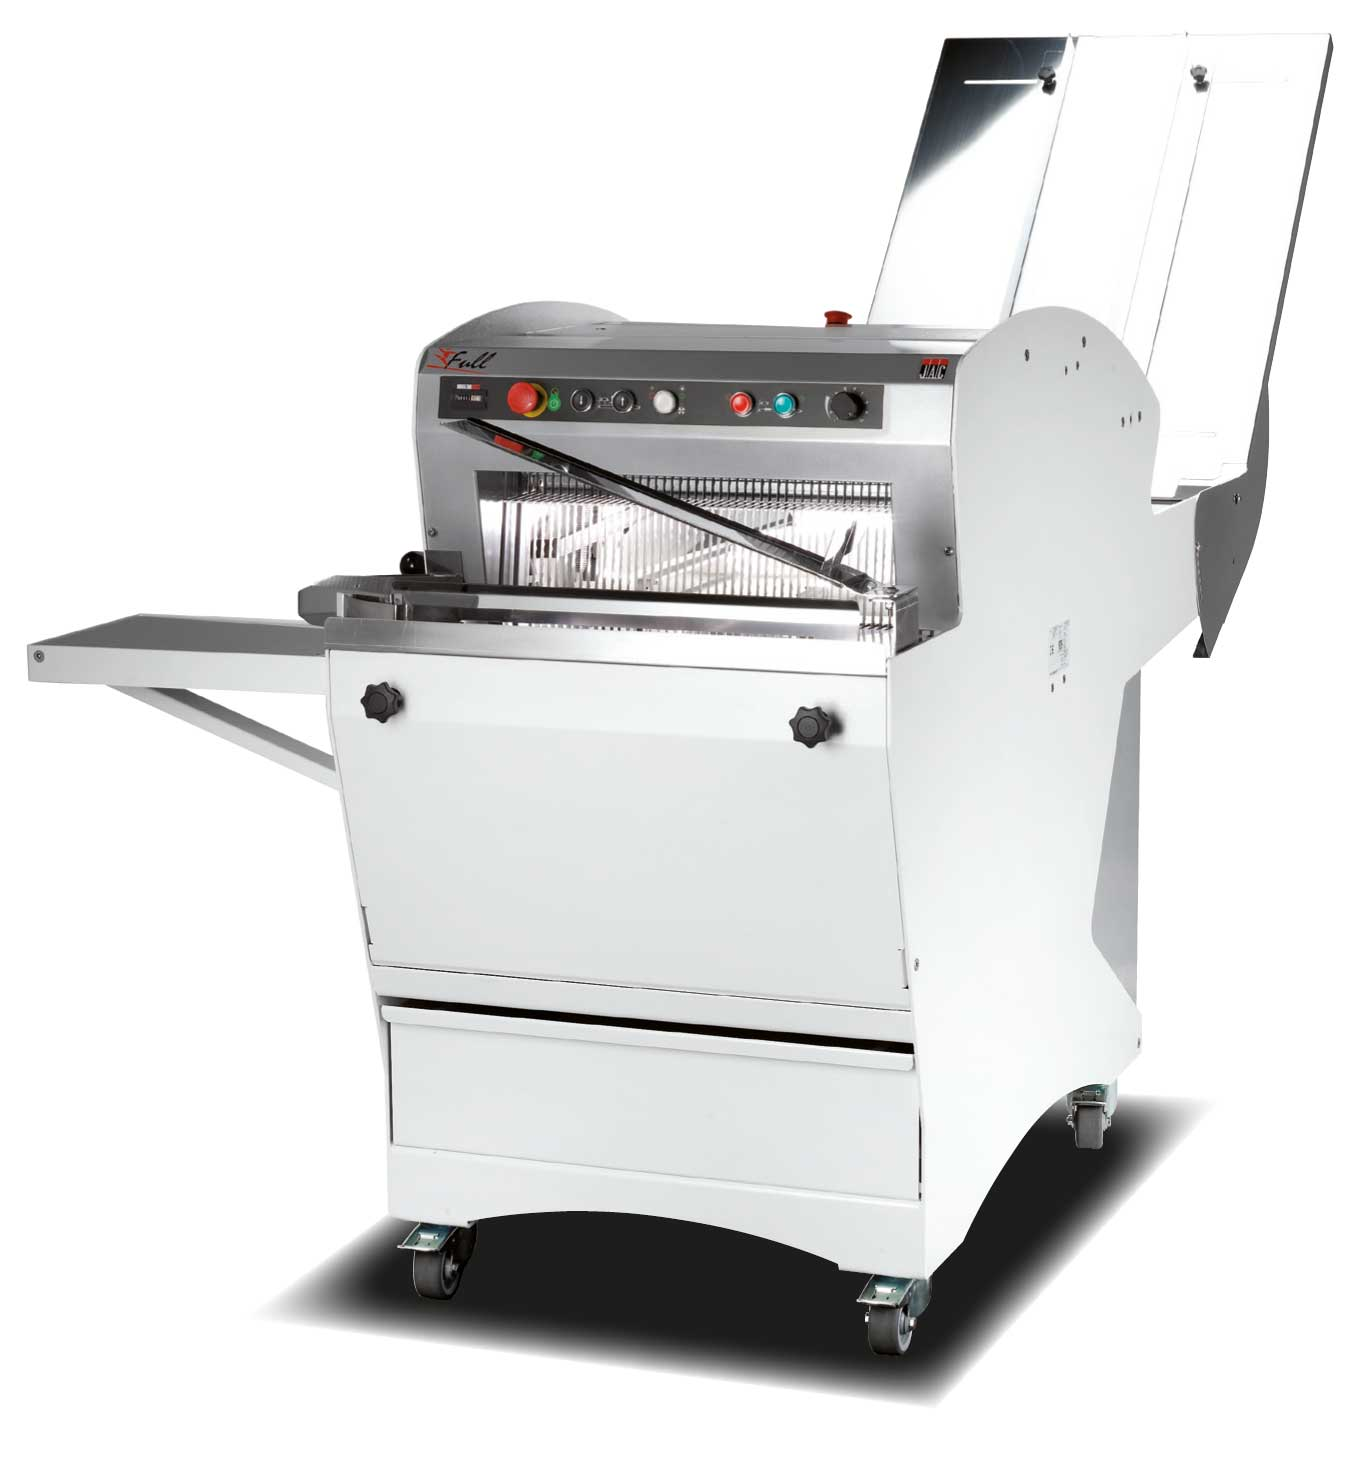 FULL 520 Automatic Bread Slicer